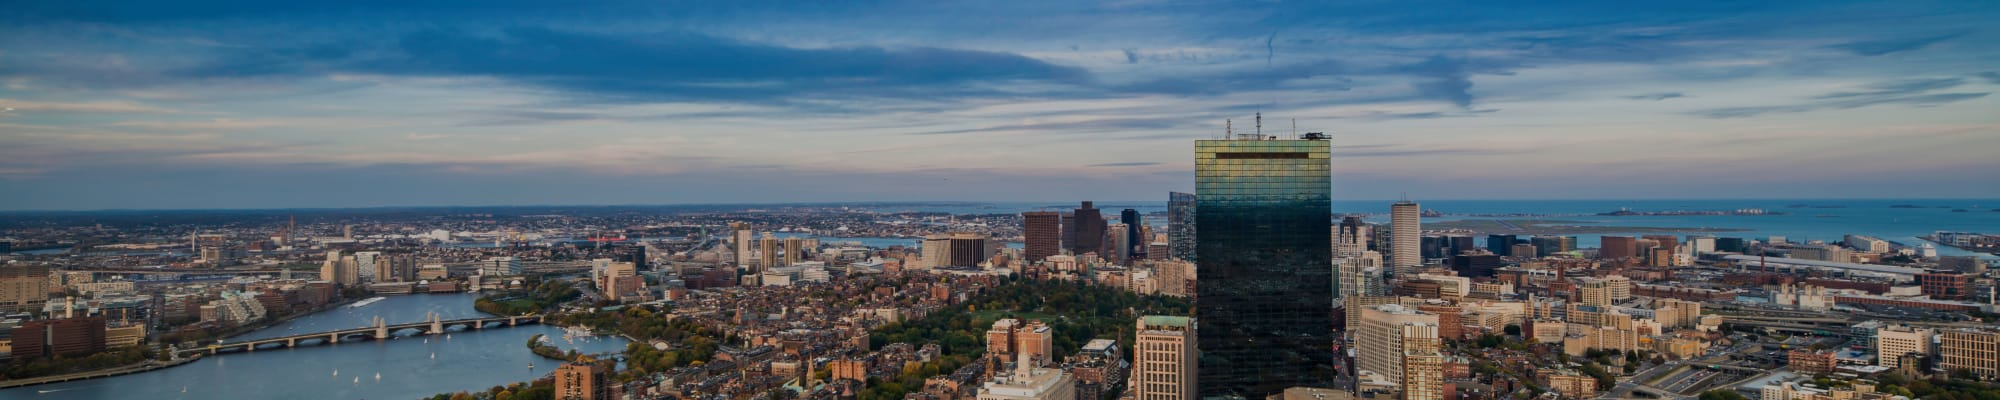 News & Events at First Realty Management in Boston, MA